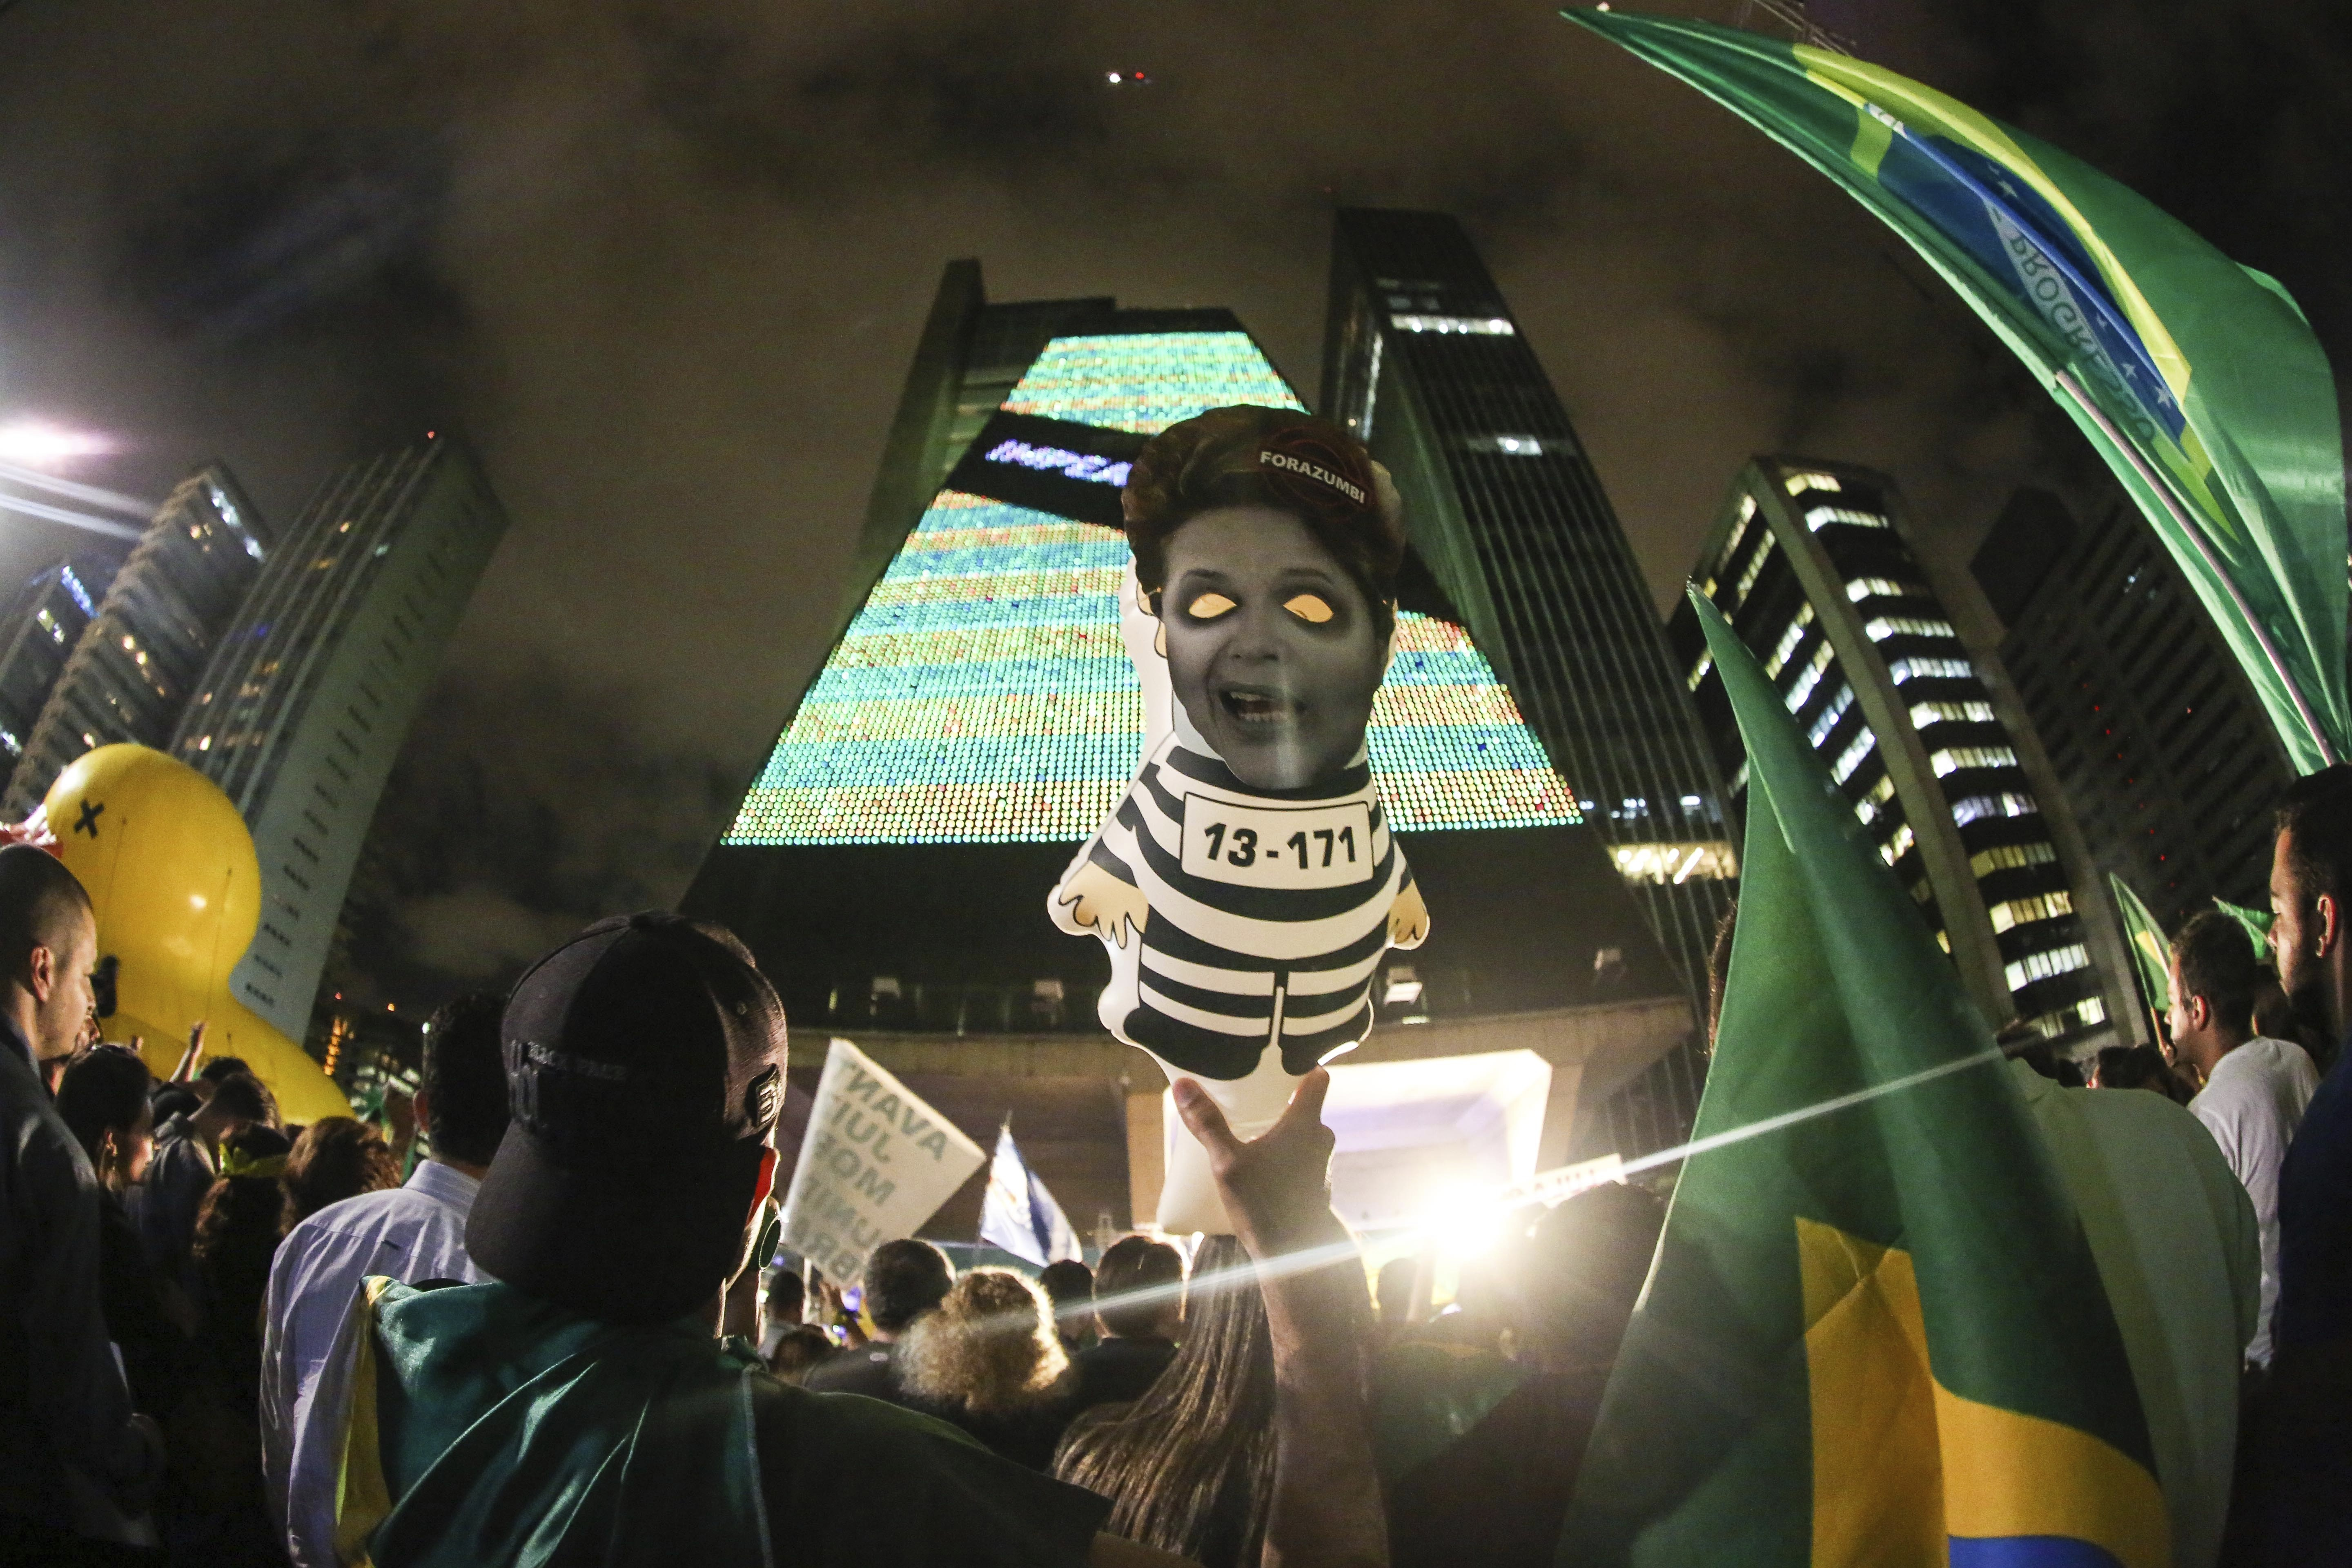 People Protest Against Dilma Roussef's Government in Sao Paulo